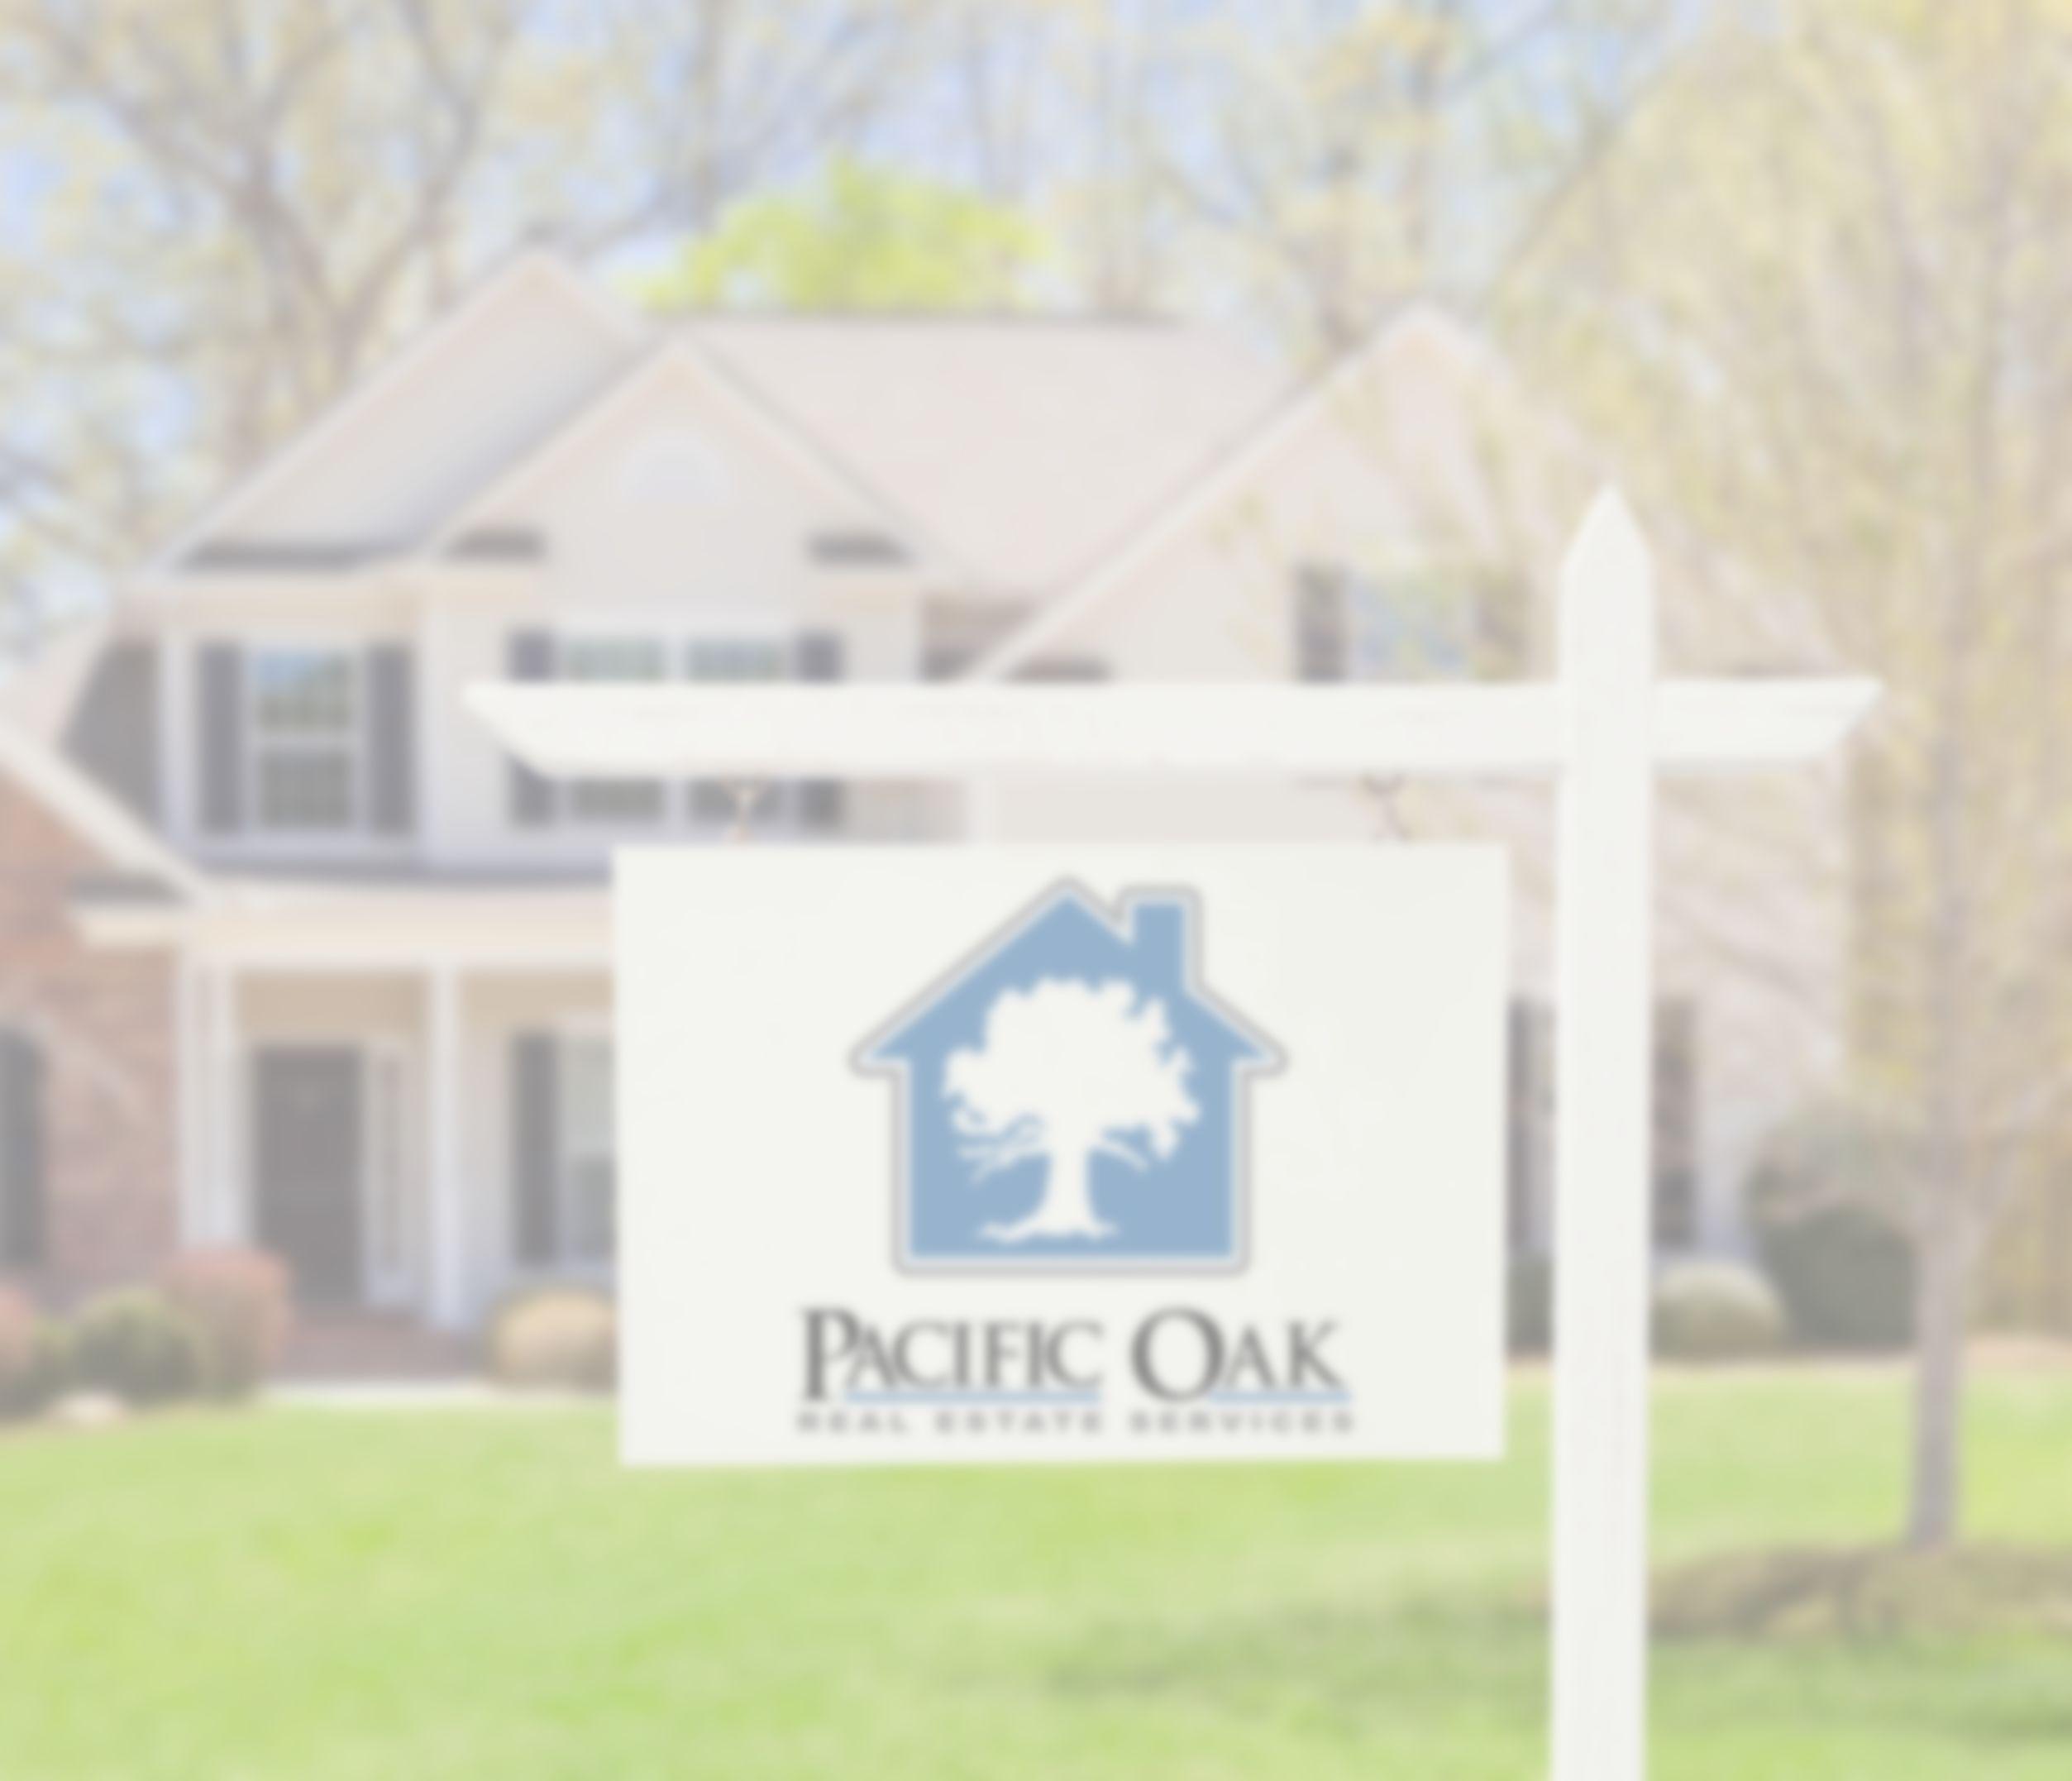 Pacific Oak Real Estate Services | BRE#01766553